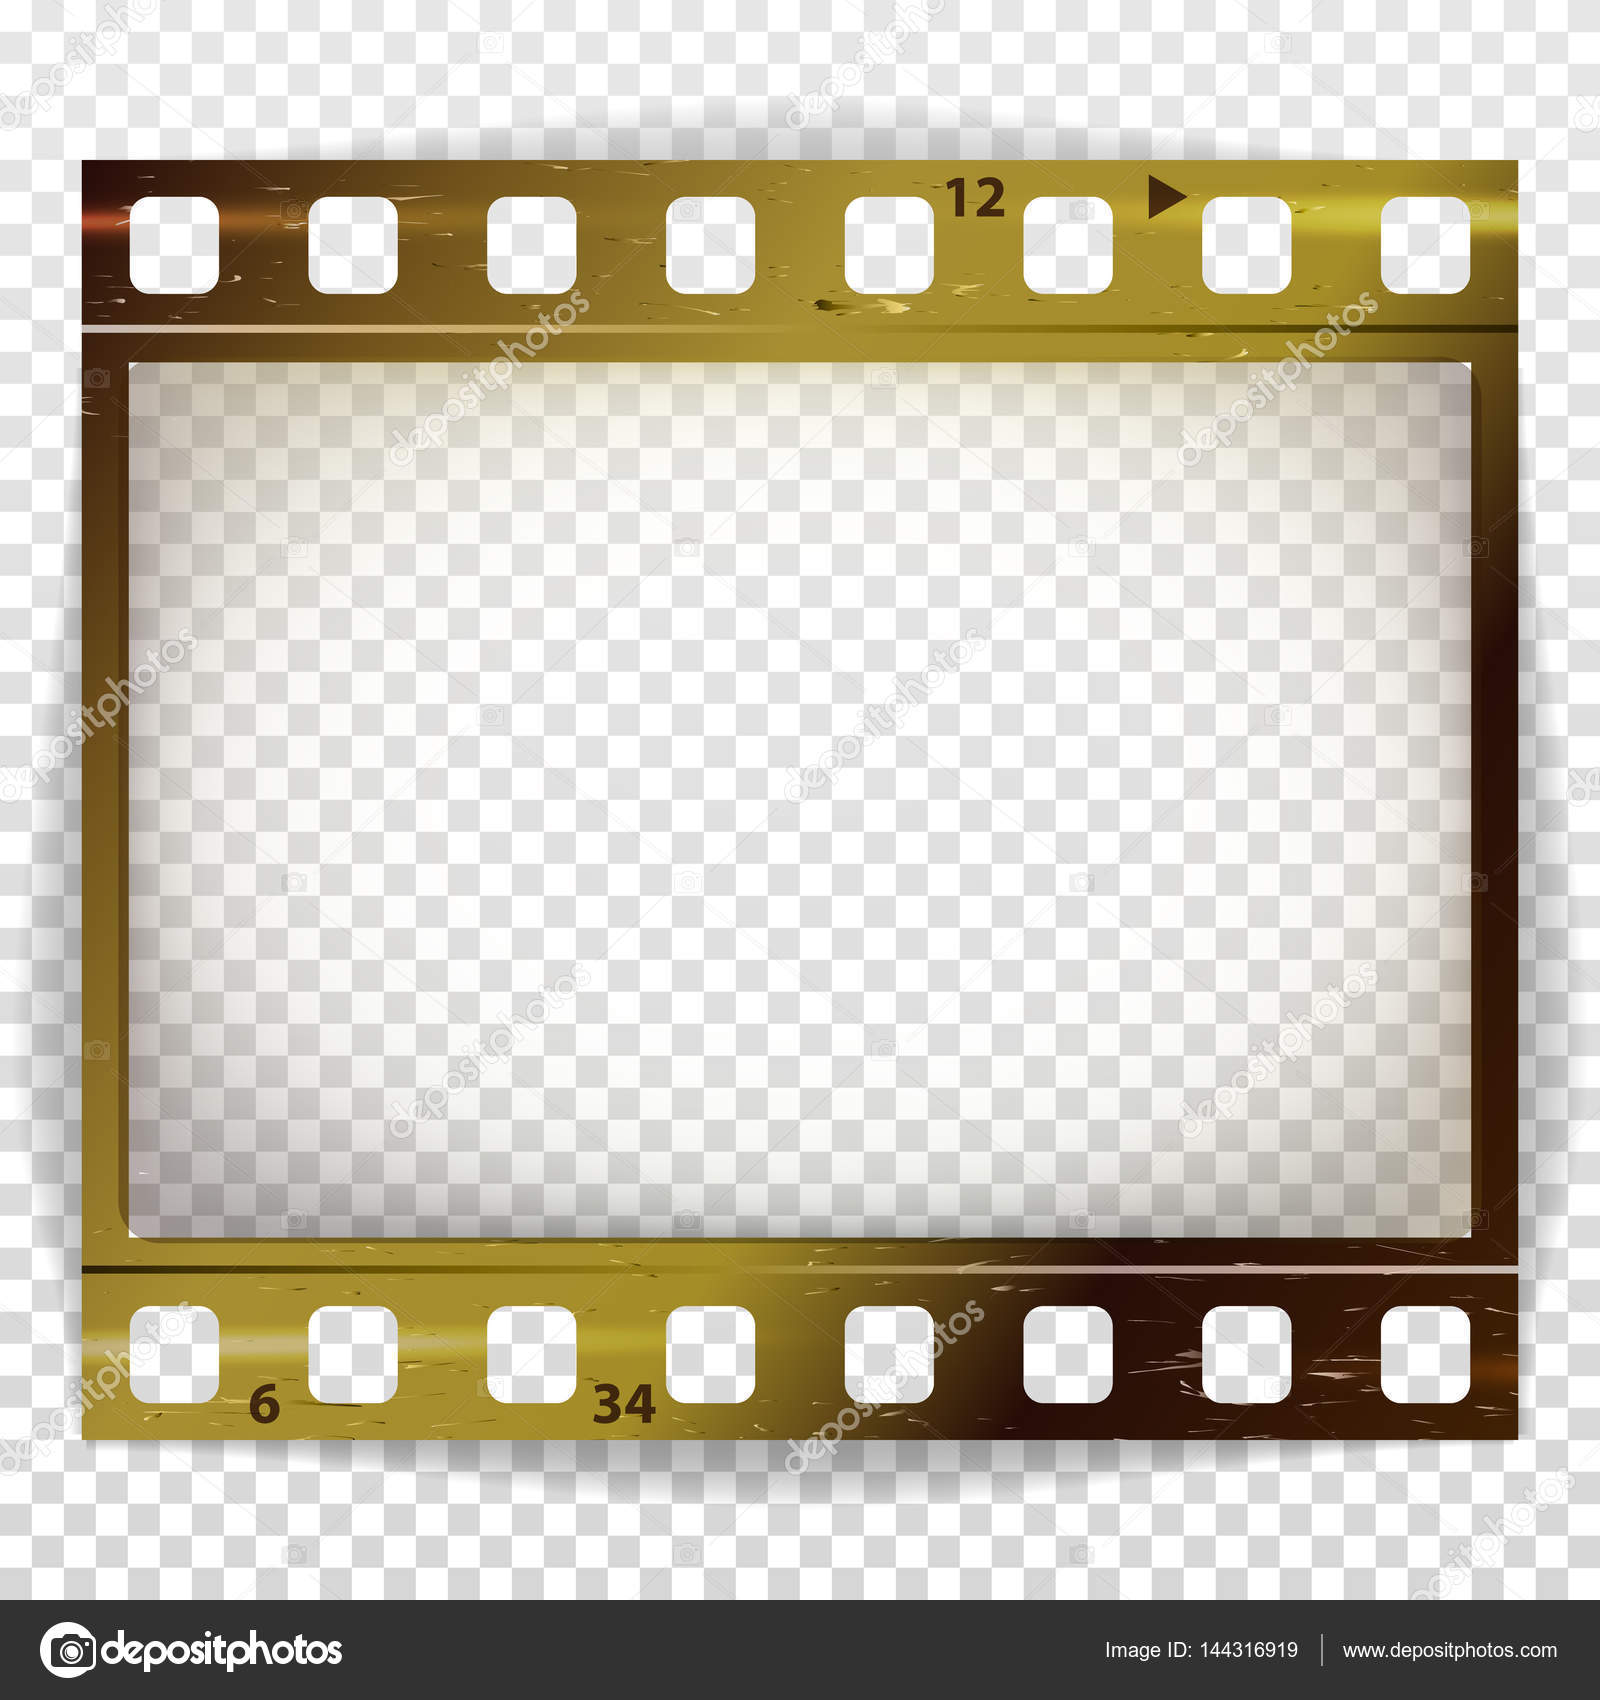 Film strip vector cinema of photo frame strip blank scratched film strip vector cinema of photo frame strip blank scratched isolated on transparent background jeuxipadfo Image collections